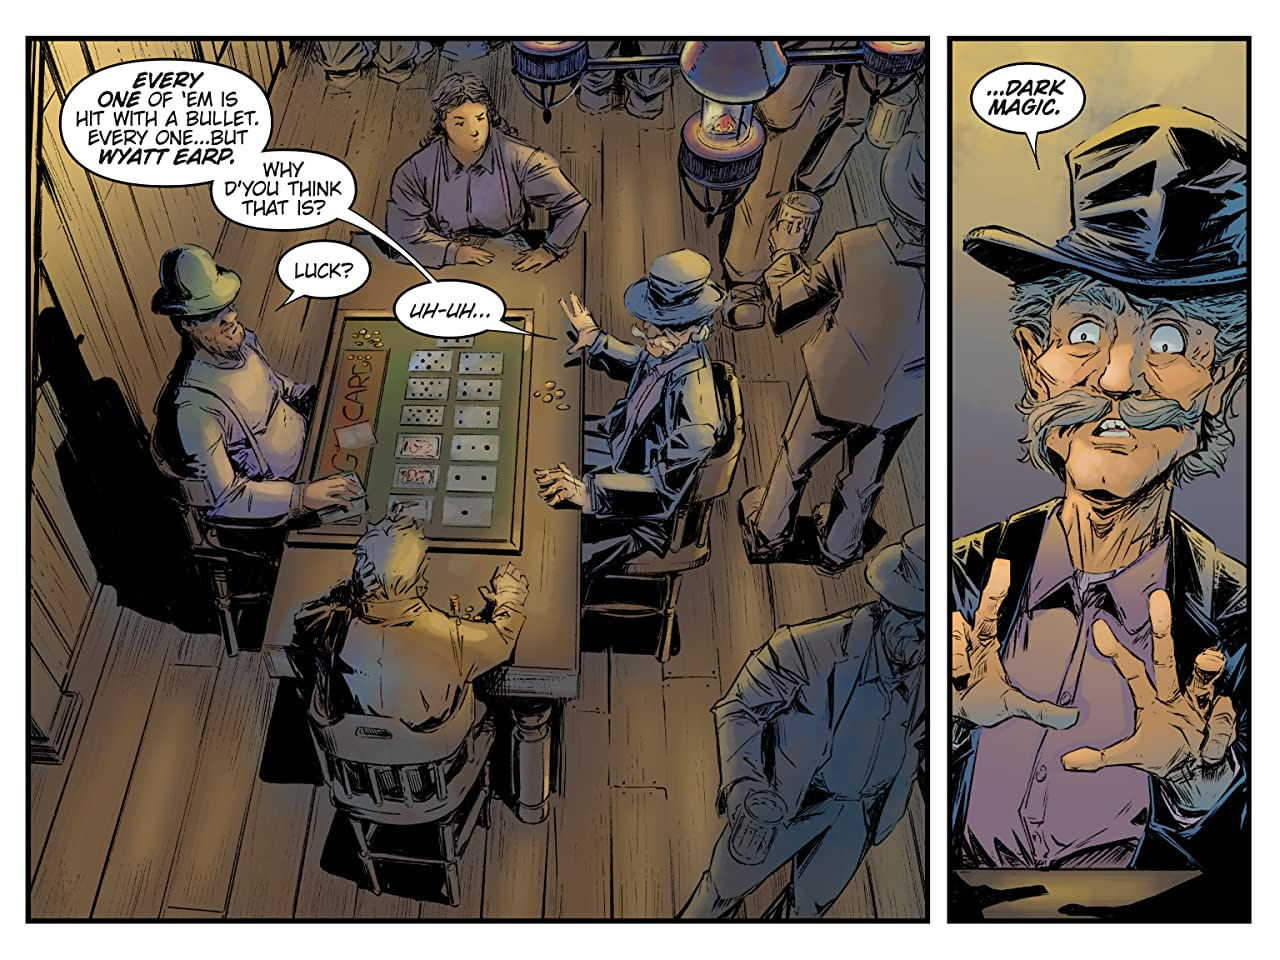 The Further Travels Of Wyatt Earp #3